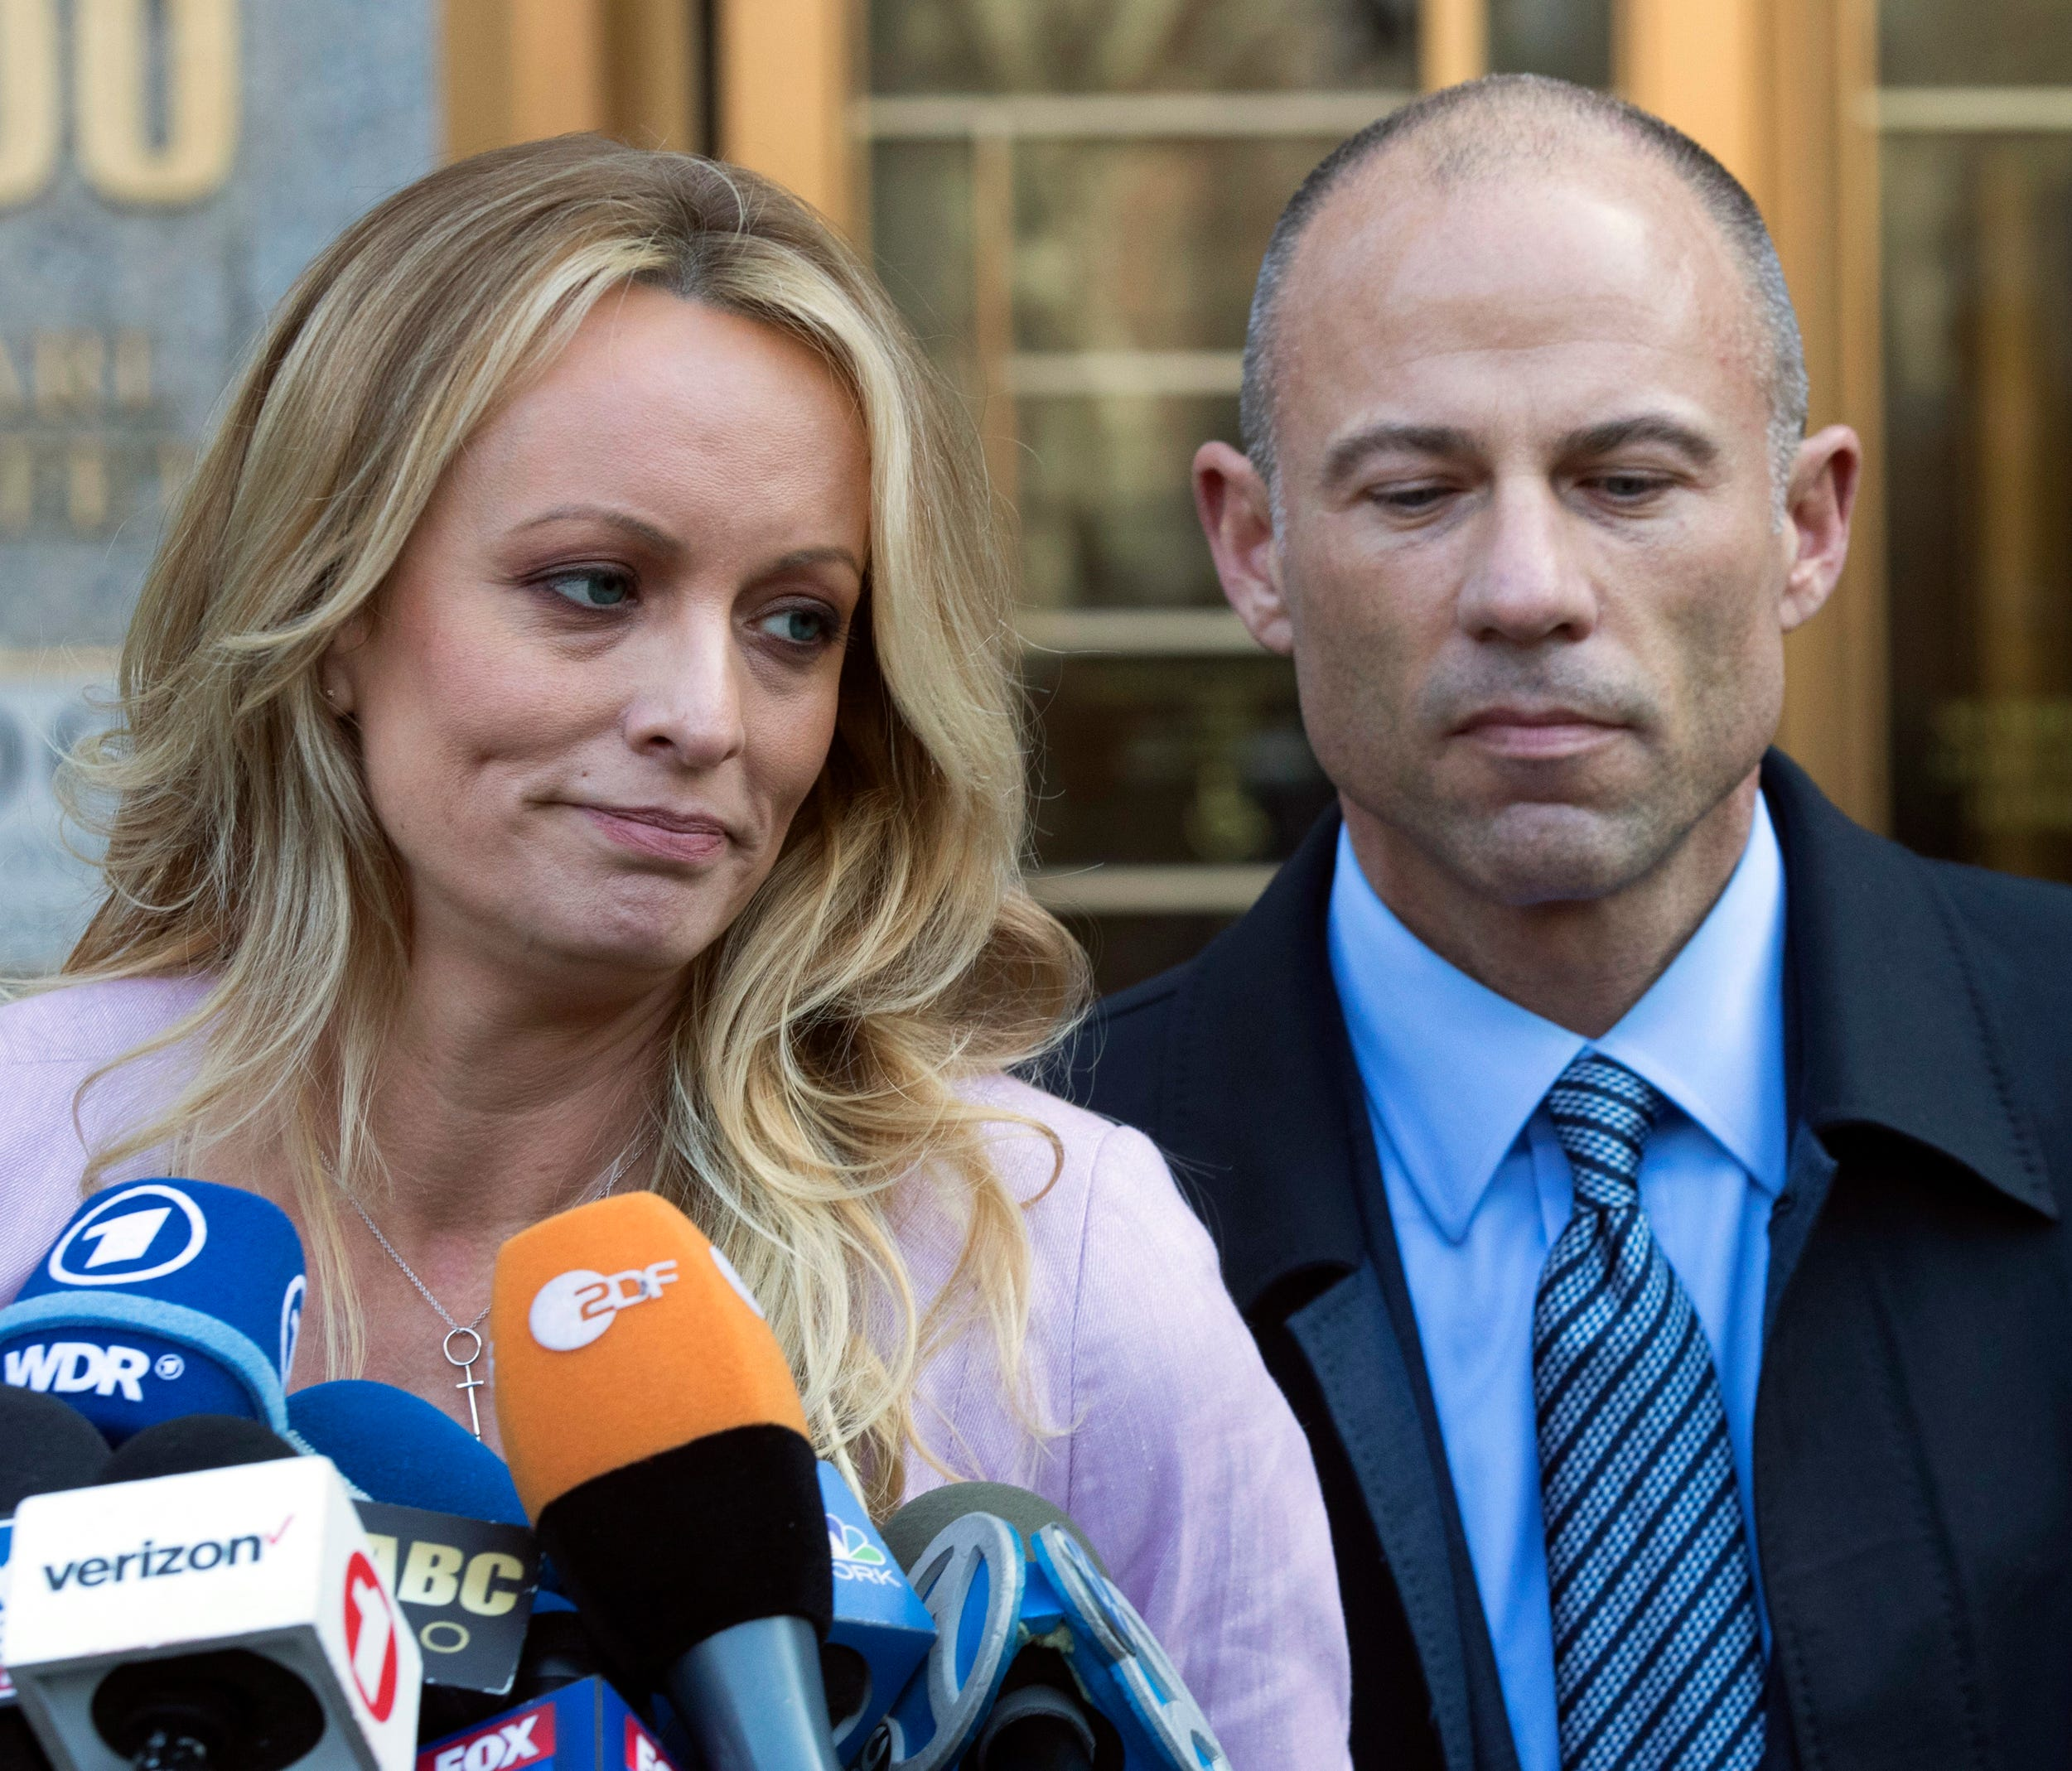 In this April 16, 2018 file photo, adult film actress Stormy Daniels, left, stands with her lawyer Michael Avenatti as she speaks outside federal court, in New York.